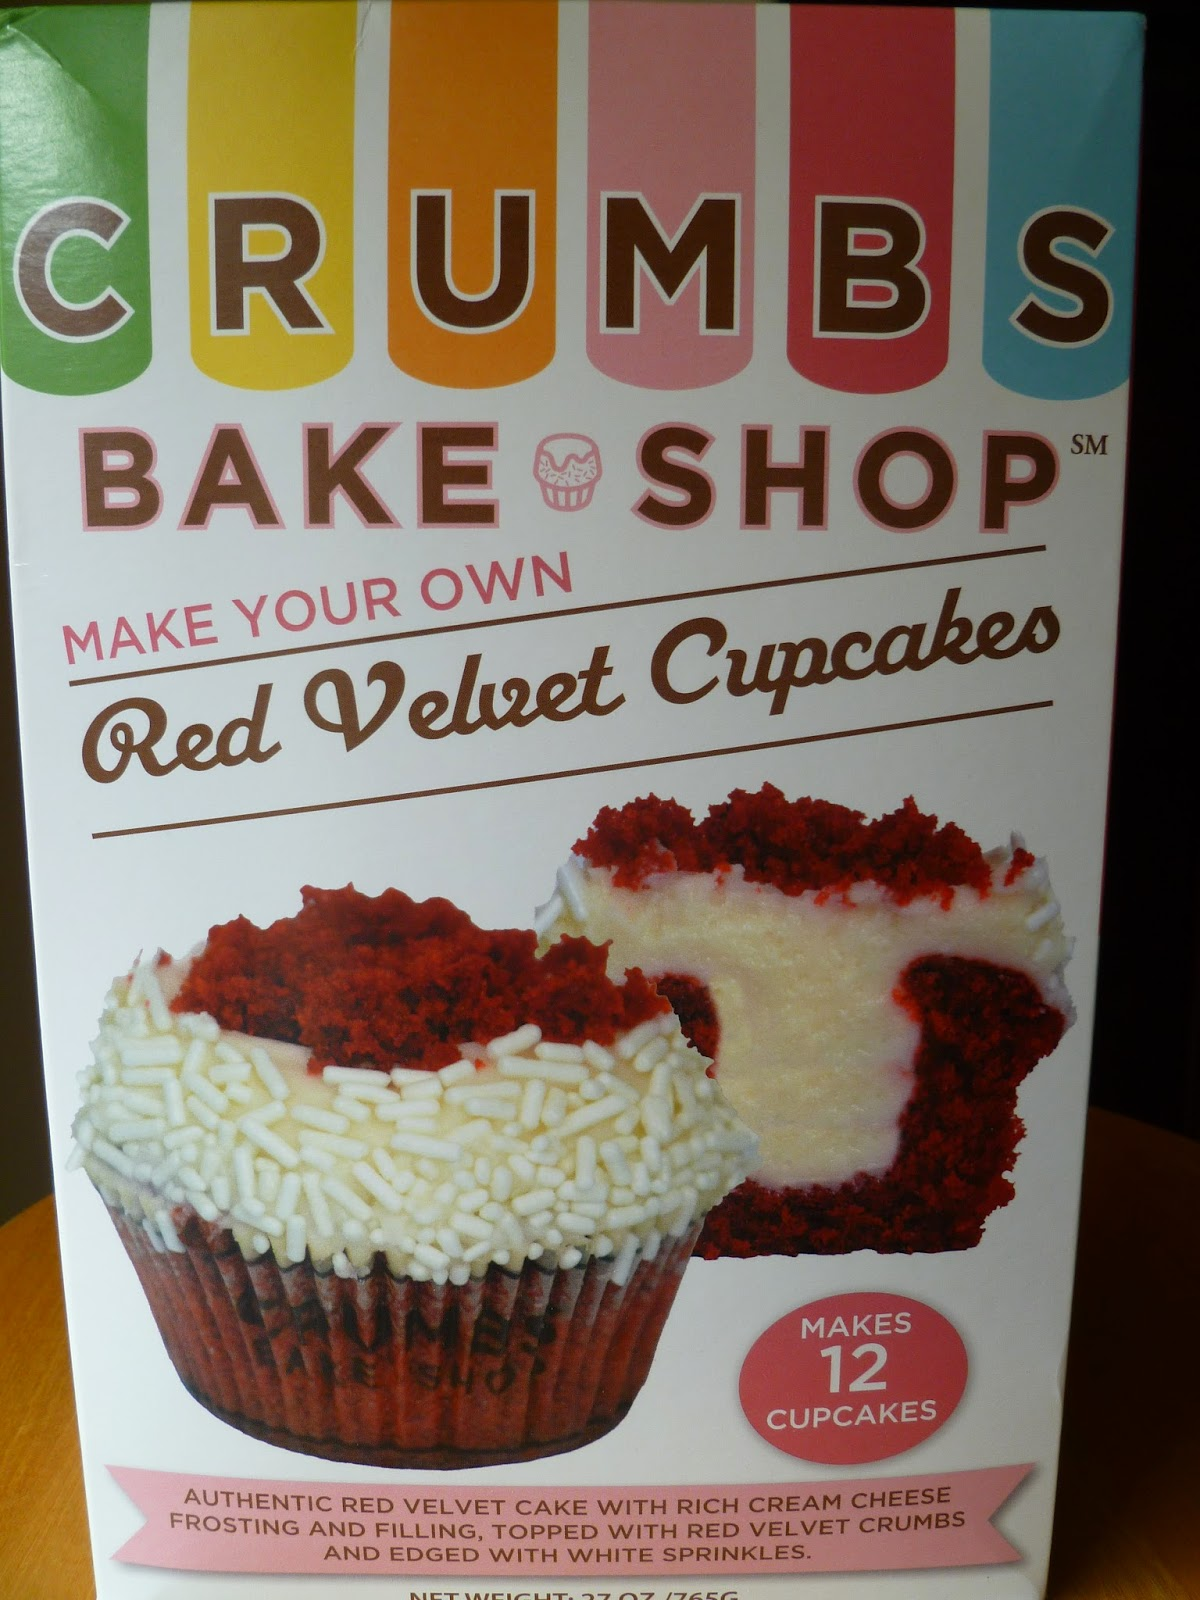 Crumbs bake shop советник форекс regression channel